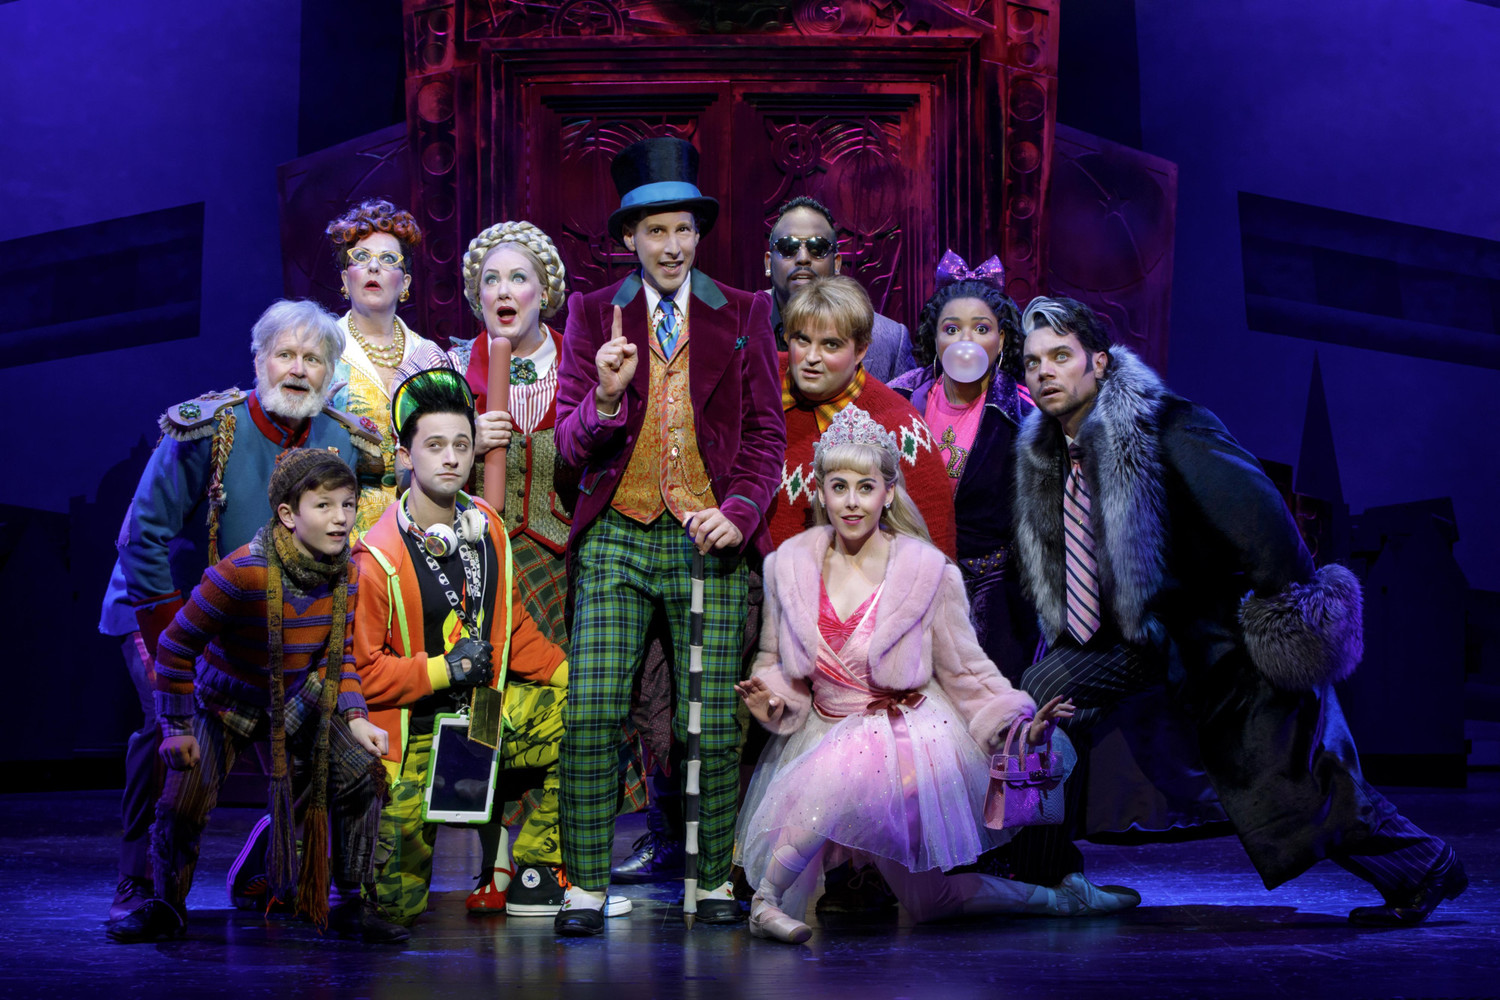 BWW Review: CHARLIE AND THE CHOCOLATE FACTORY at Orpheum Theatre